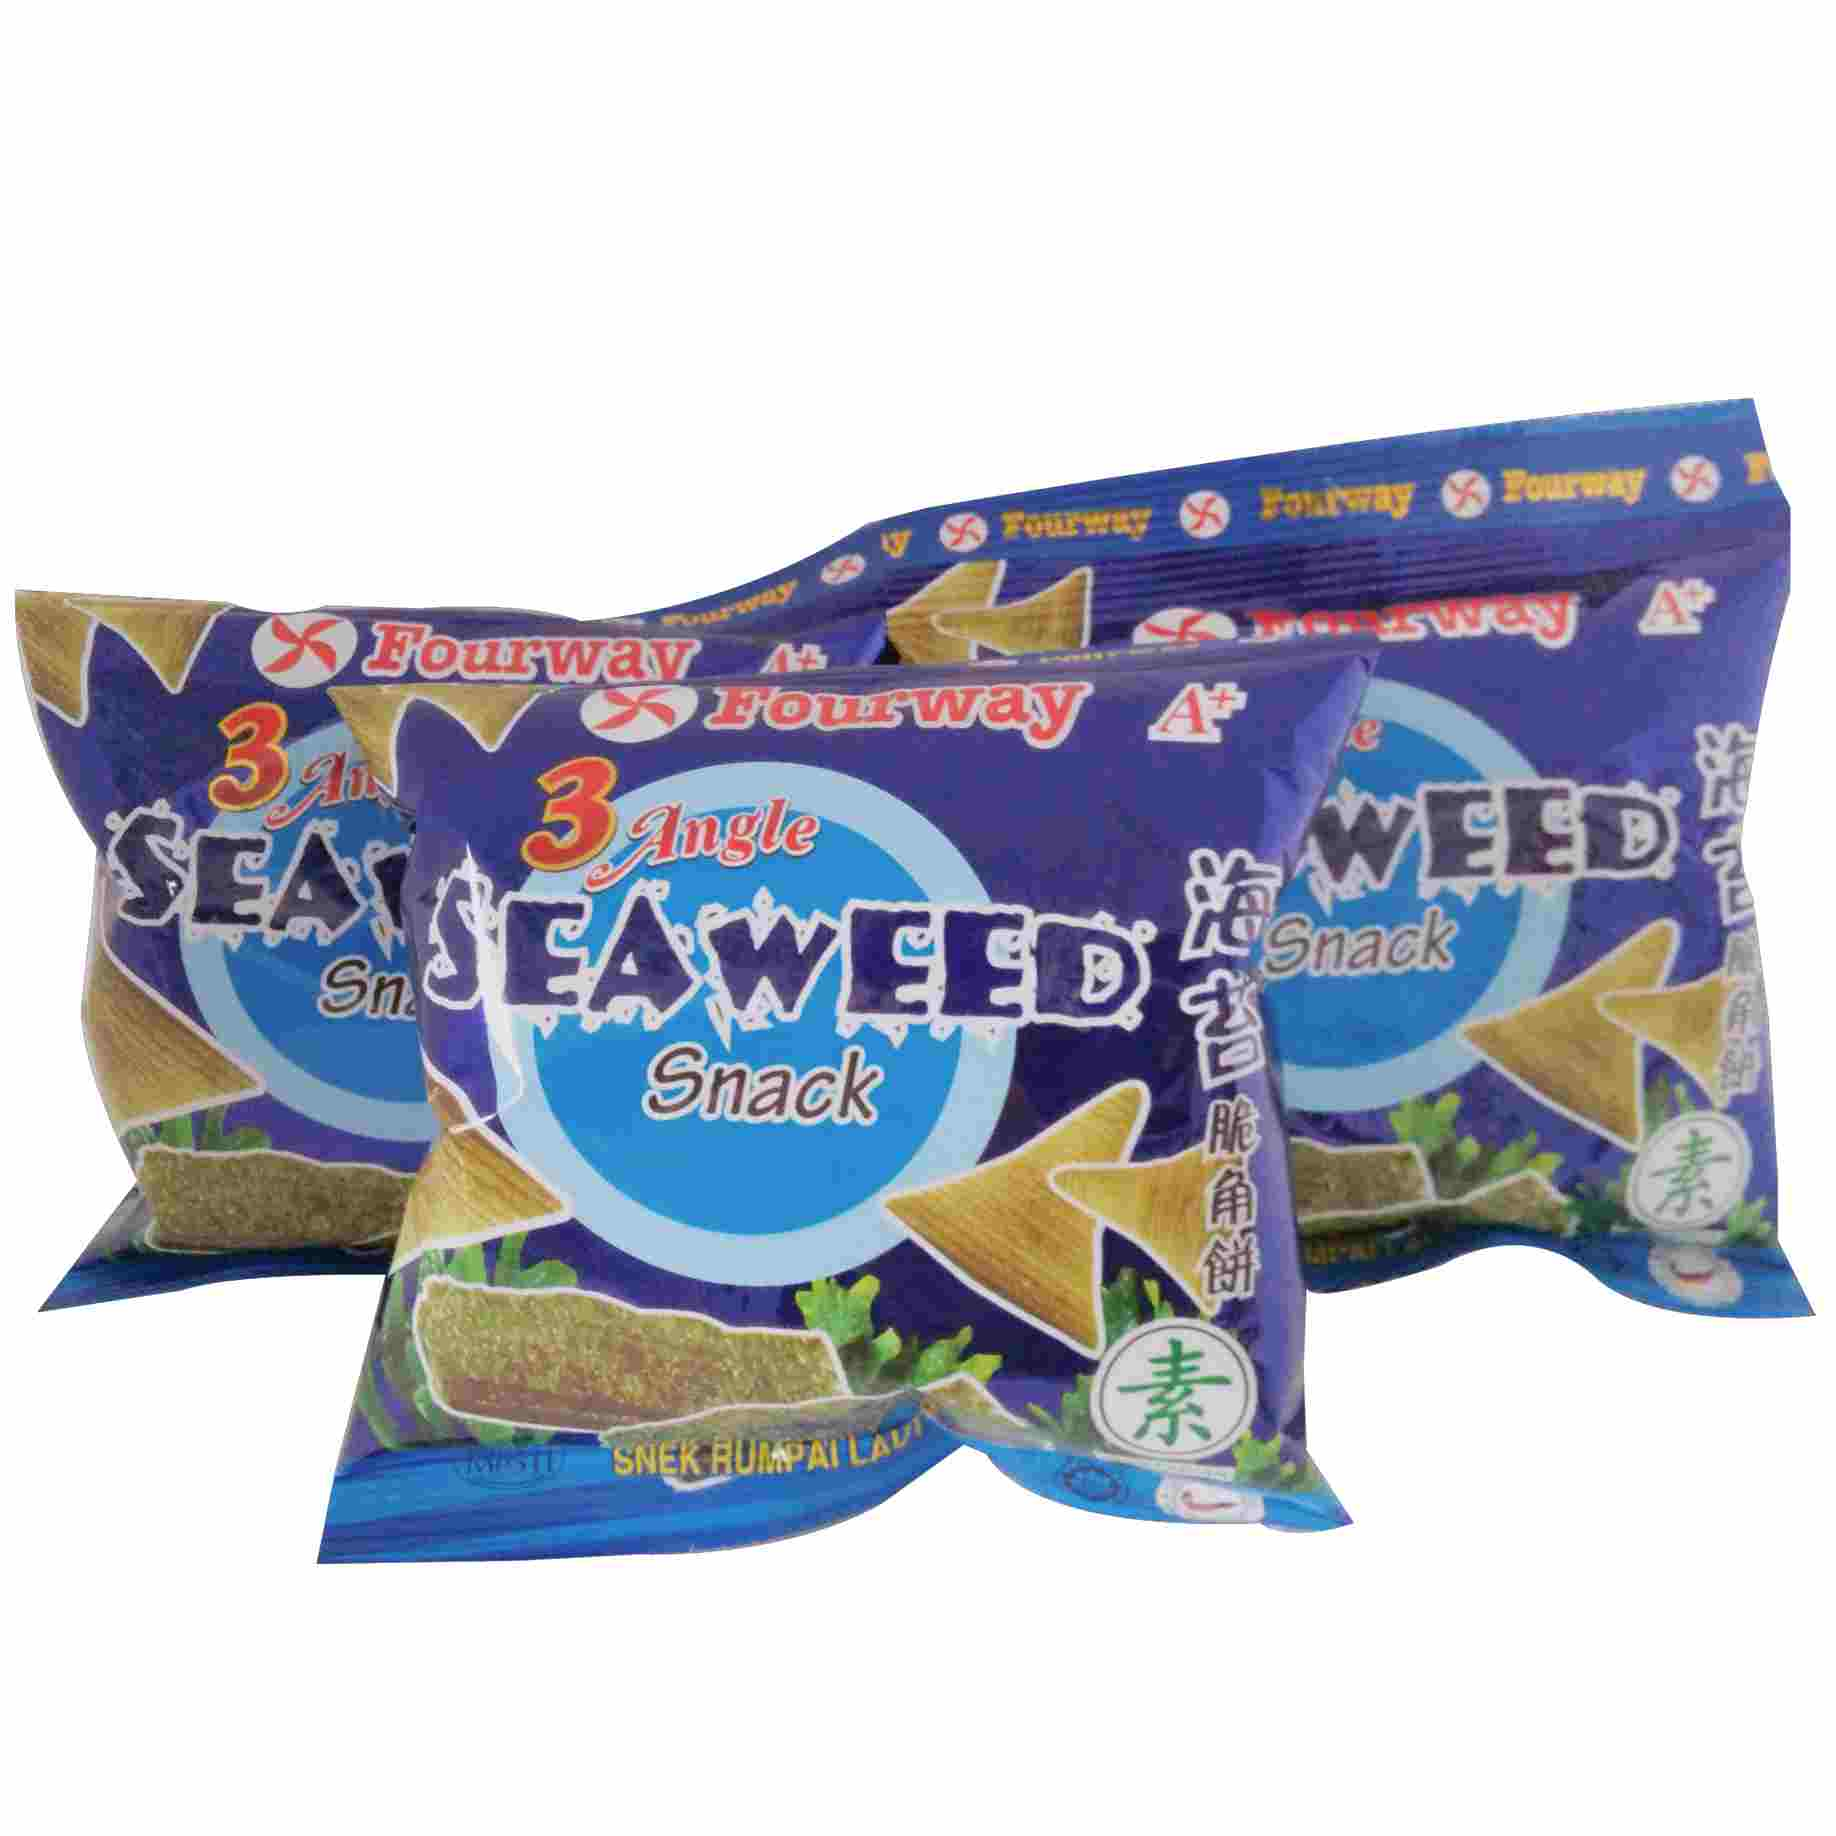 Image SEAWEED SNACK 海苔脆角饼 (3packtes)75grams